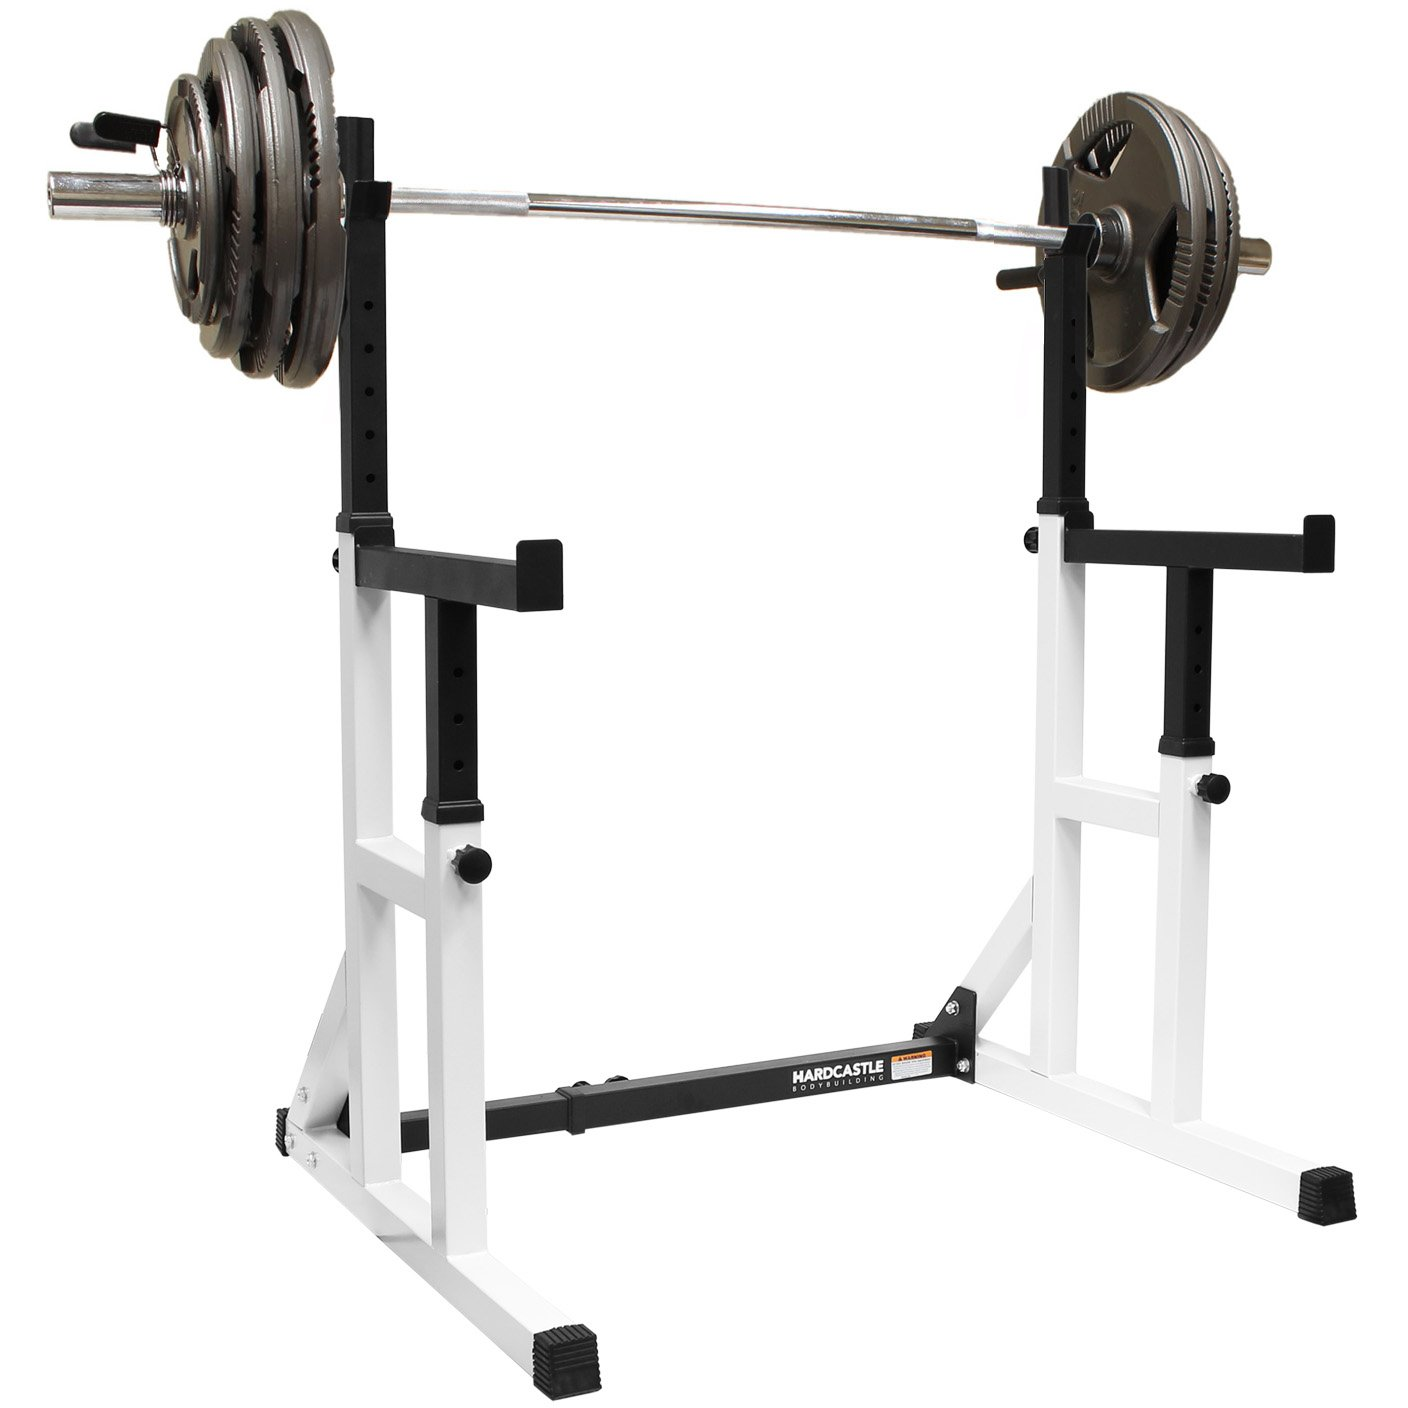 weight equipment gym home product bench press bar barbell machine york